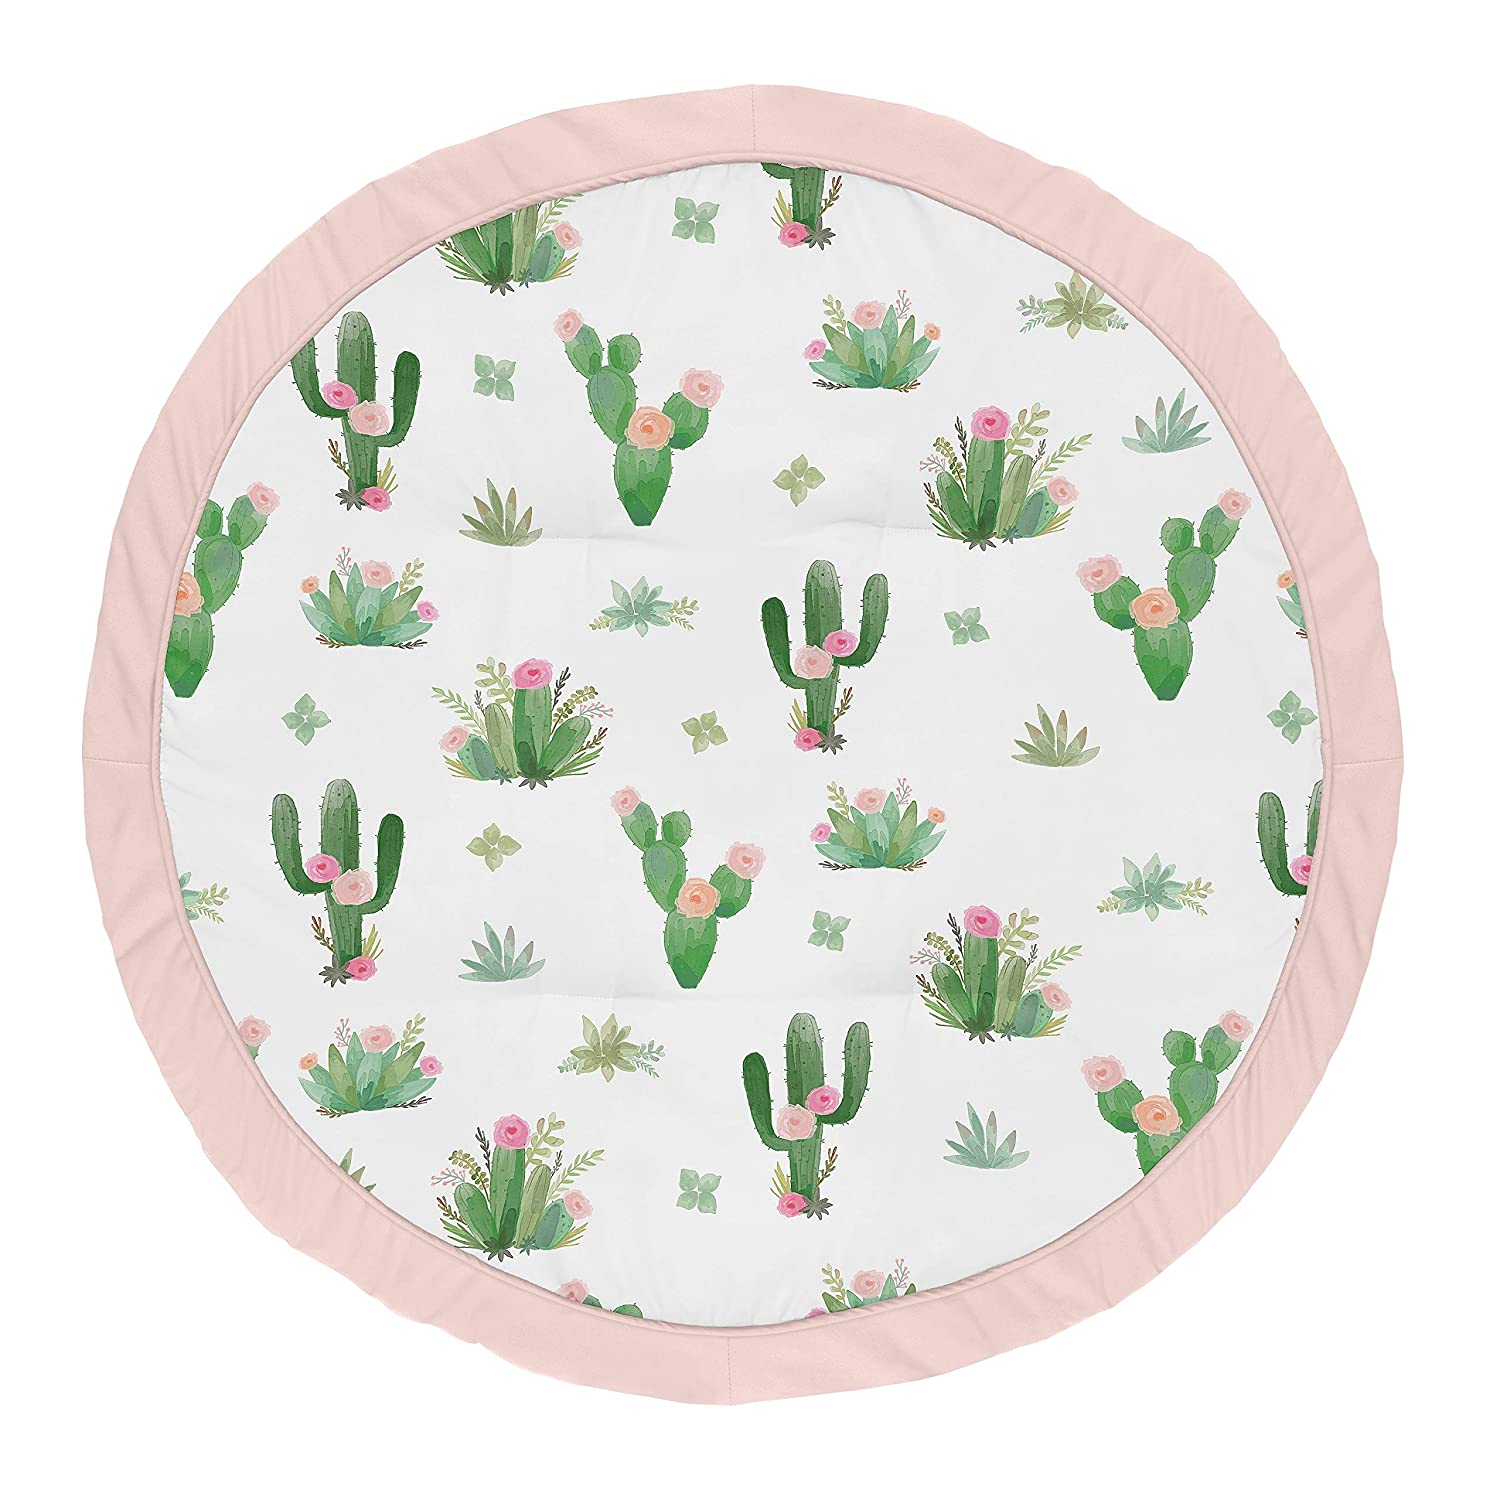 Sweet Jojo Designs Pink and Green Boho Watercolor Playmat Tummy Time Baby and Infant Play Mat for Cactus Floral Collection